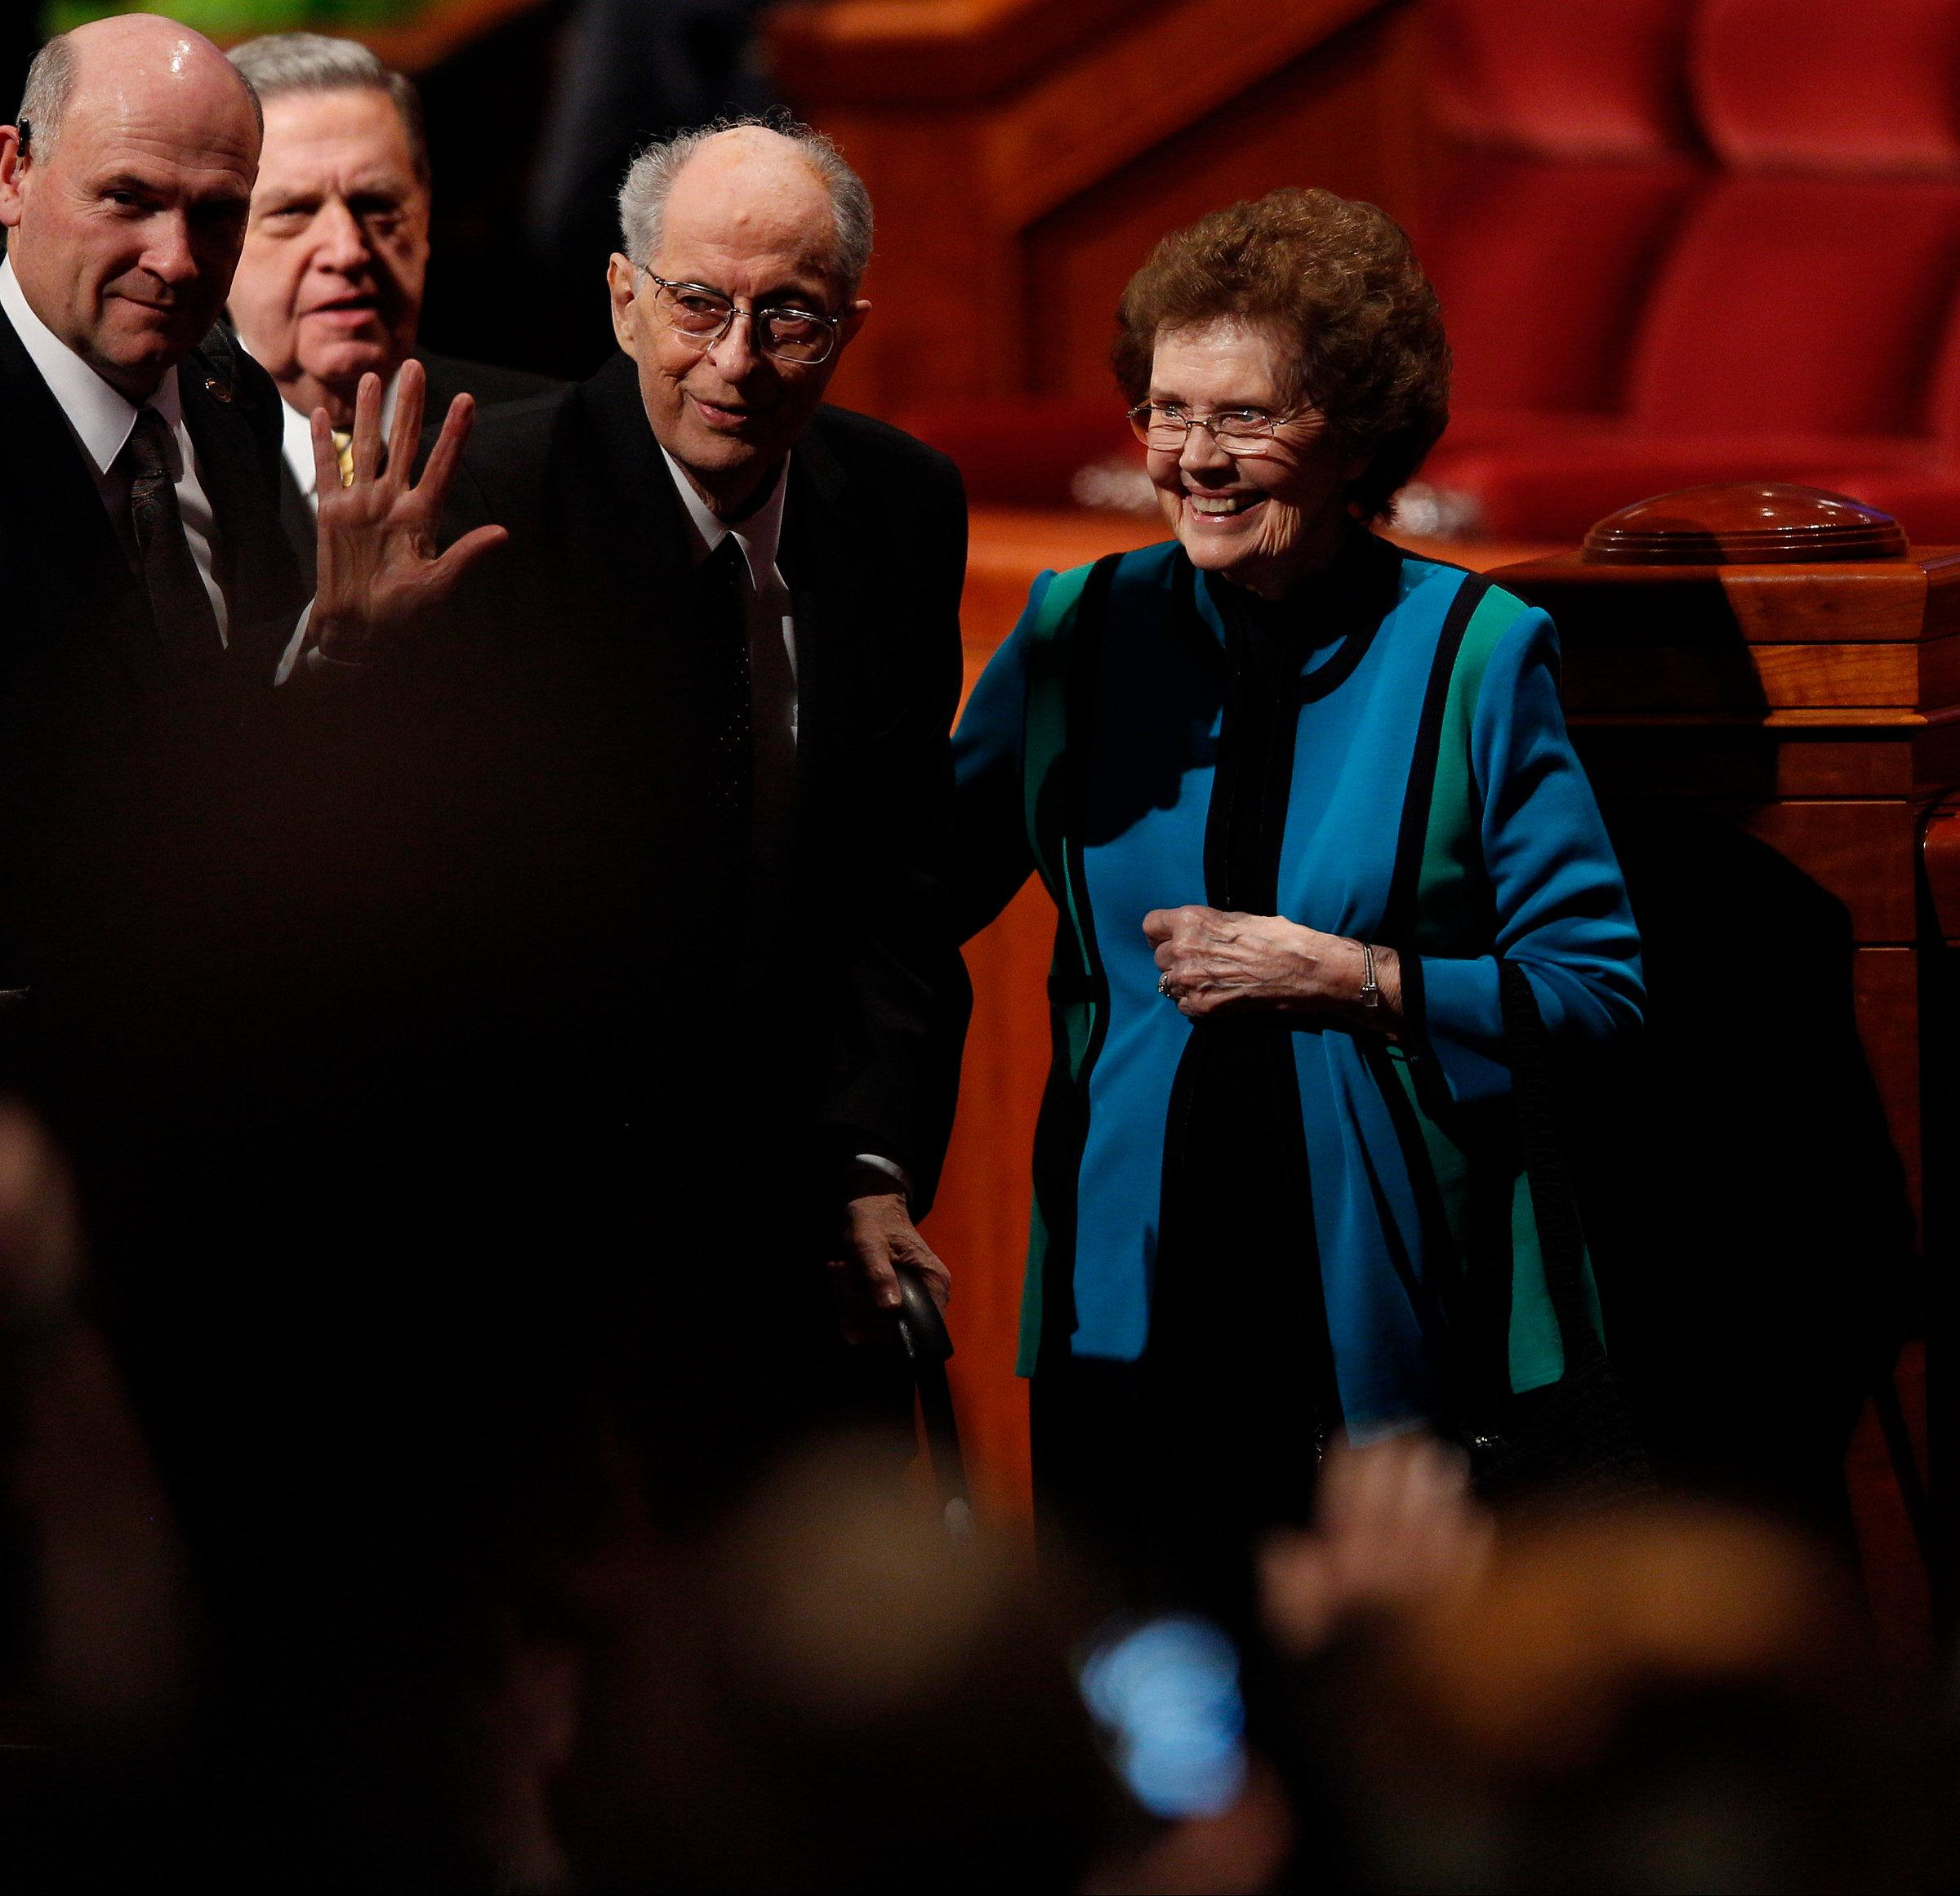 Elder Robert D. Hales with his wife, Mary, at general conference in April 2015 (Photo: LDS church, Copyright Intellectual Reserve, Inc.)